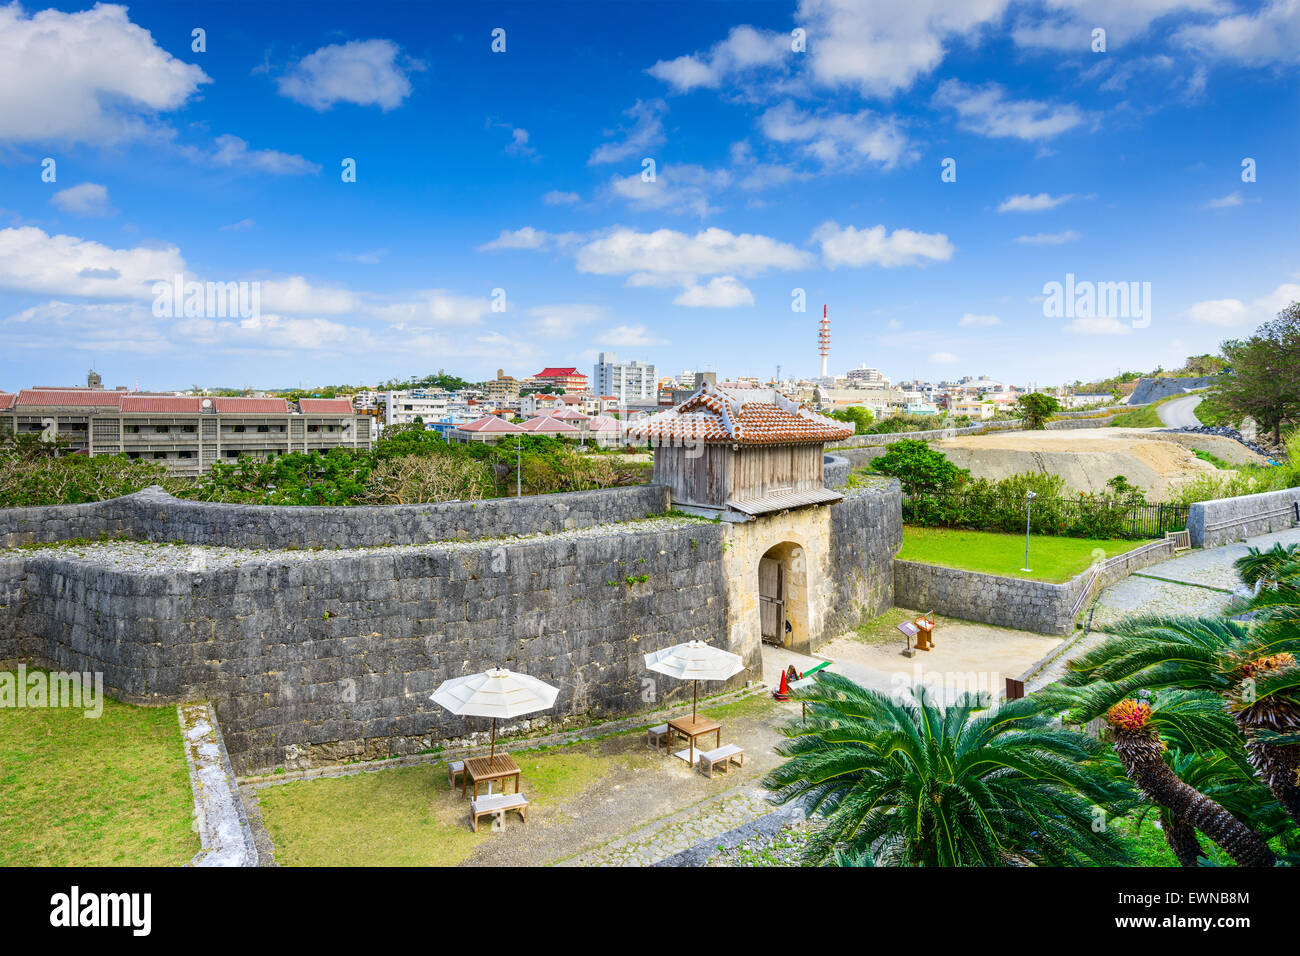 Naha, Okinawa, Japan at the outer wall of Shuri Castle. - Stock Image